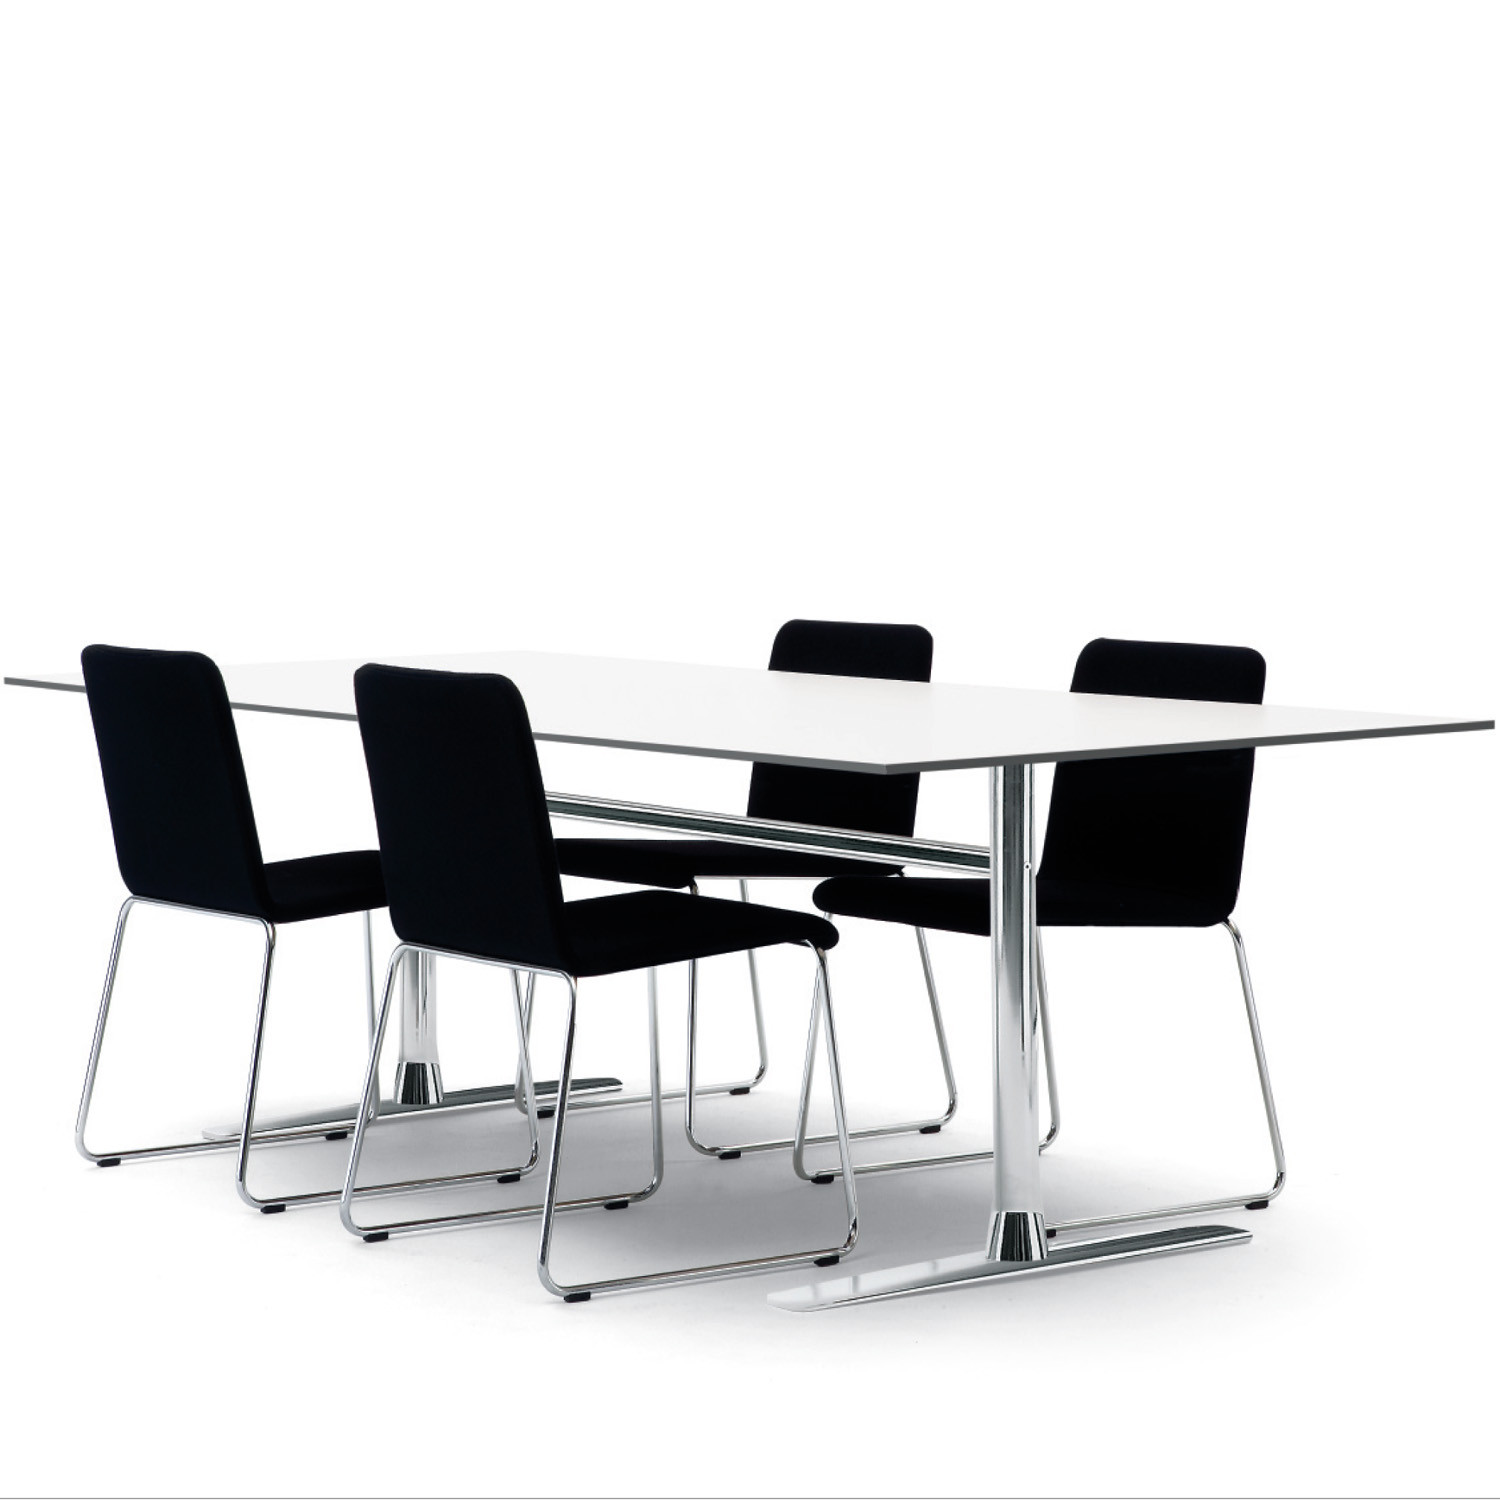 Propeller Office Meeting Table